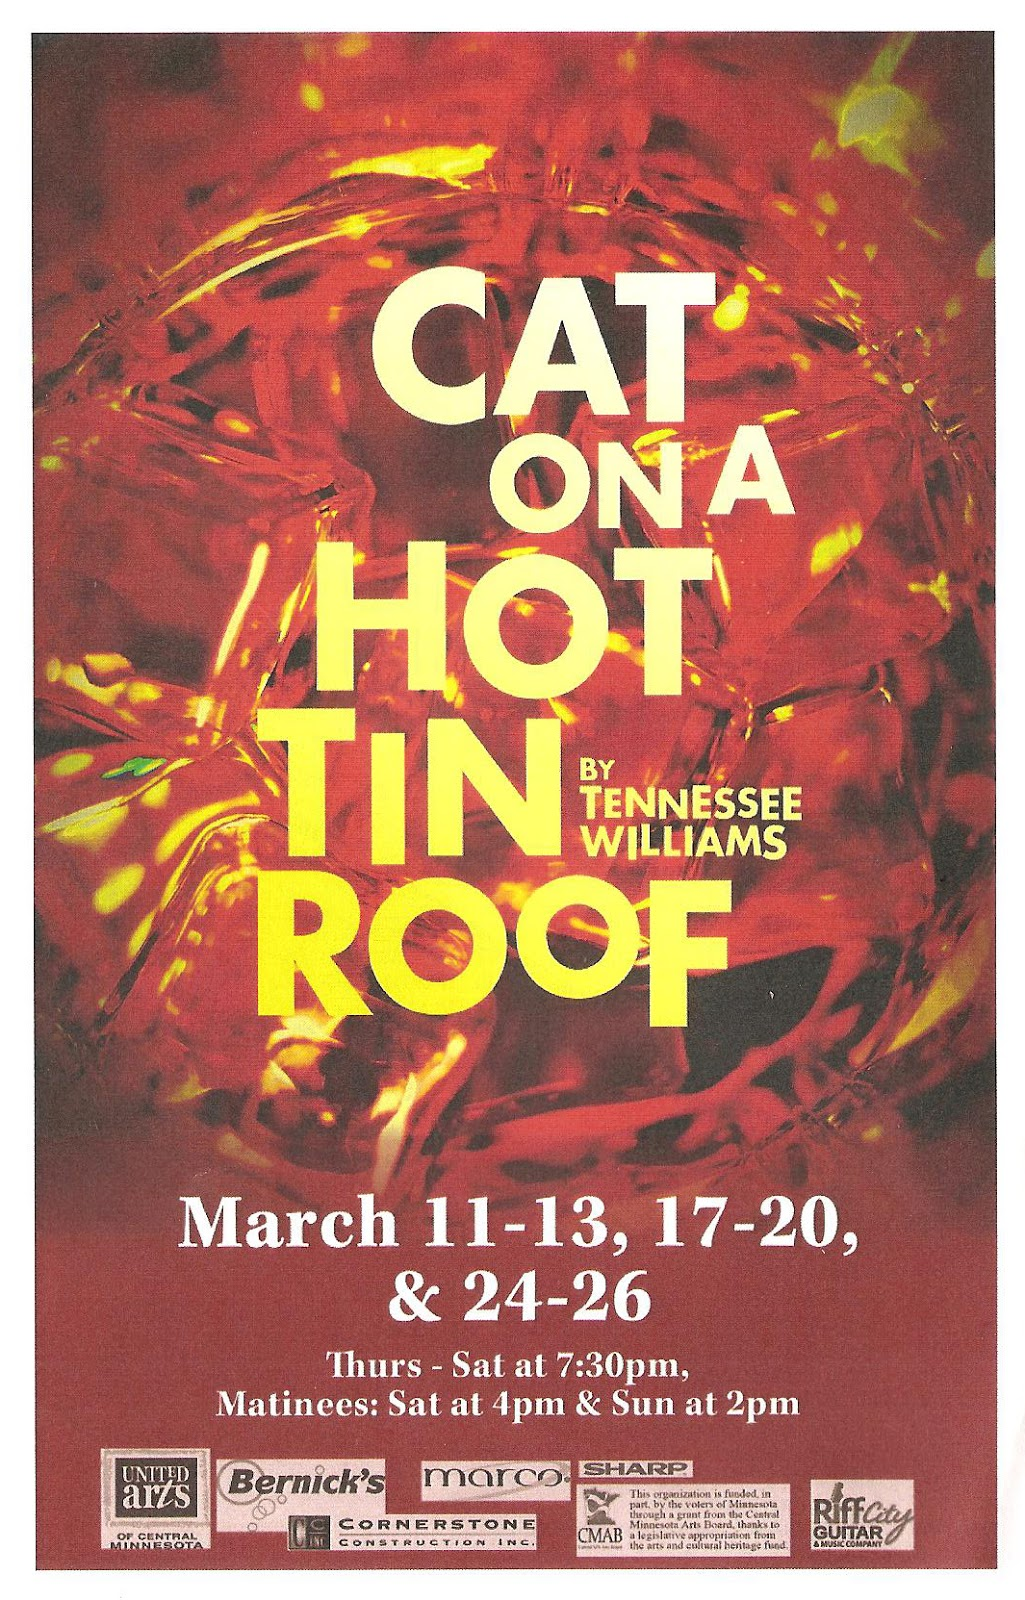 essay on cat on a tin roof in theatre Cat on a hot tin roof essay every theatre group to this american playhouse presentation of brothers vying for cat on a hot tin roof org tides theatre presents cat on a hot tin roof for each other movies subtitles.